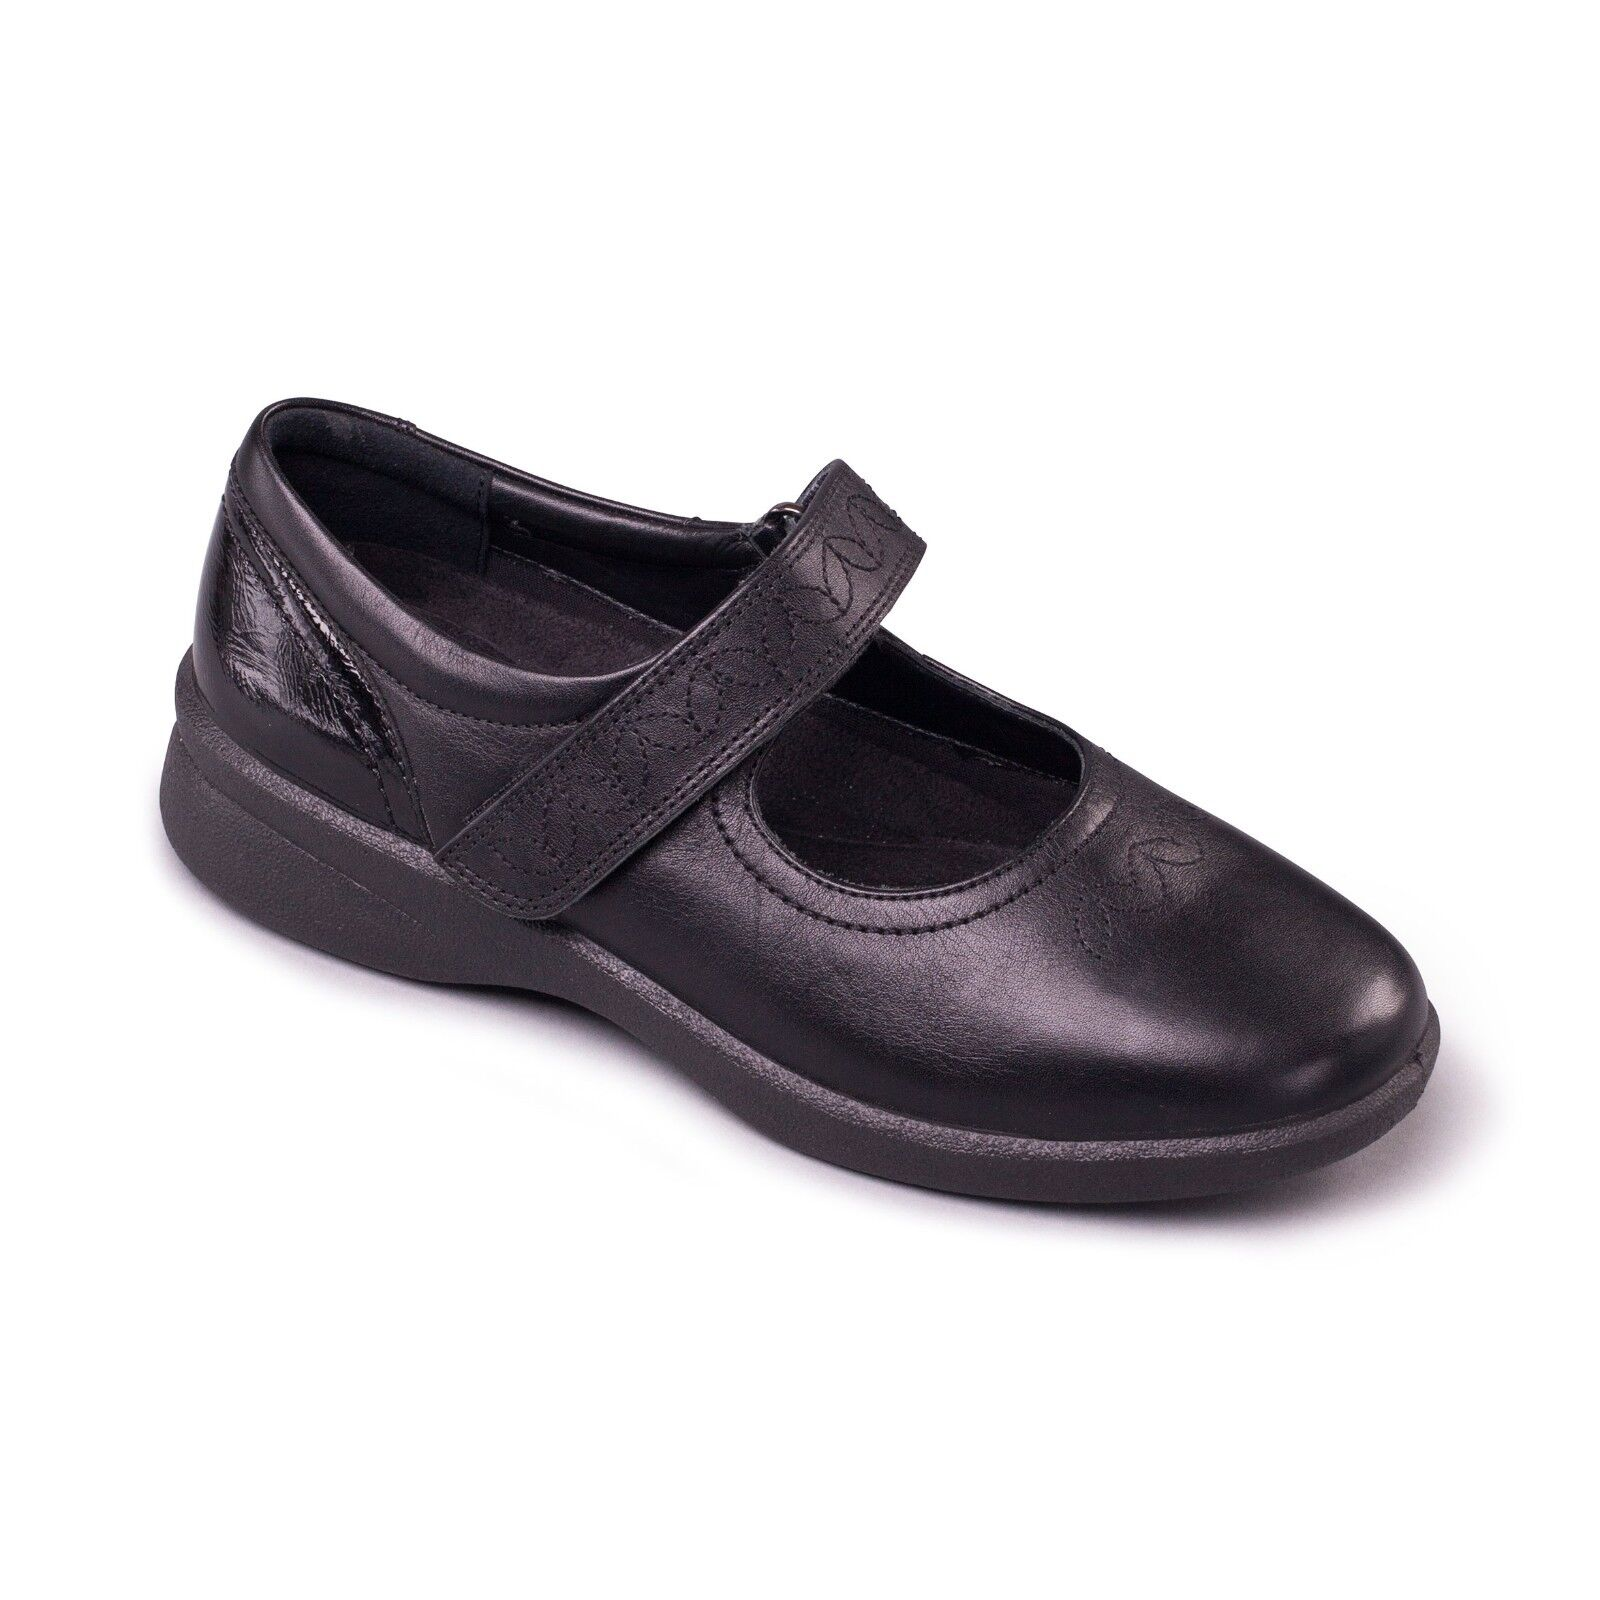 Padders Sprite 2 Ladies Casual Mary Jane Wide 3E 4E Dual Fitting shoes Black